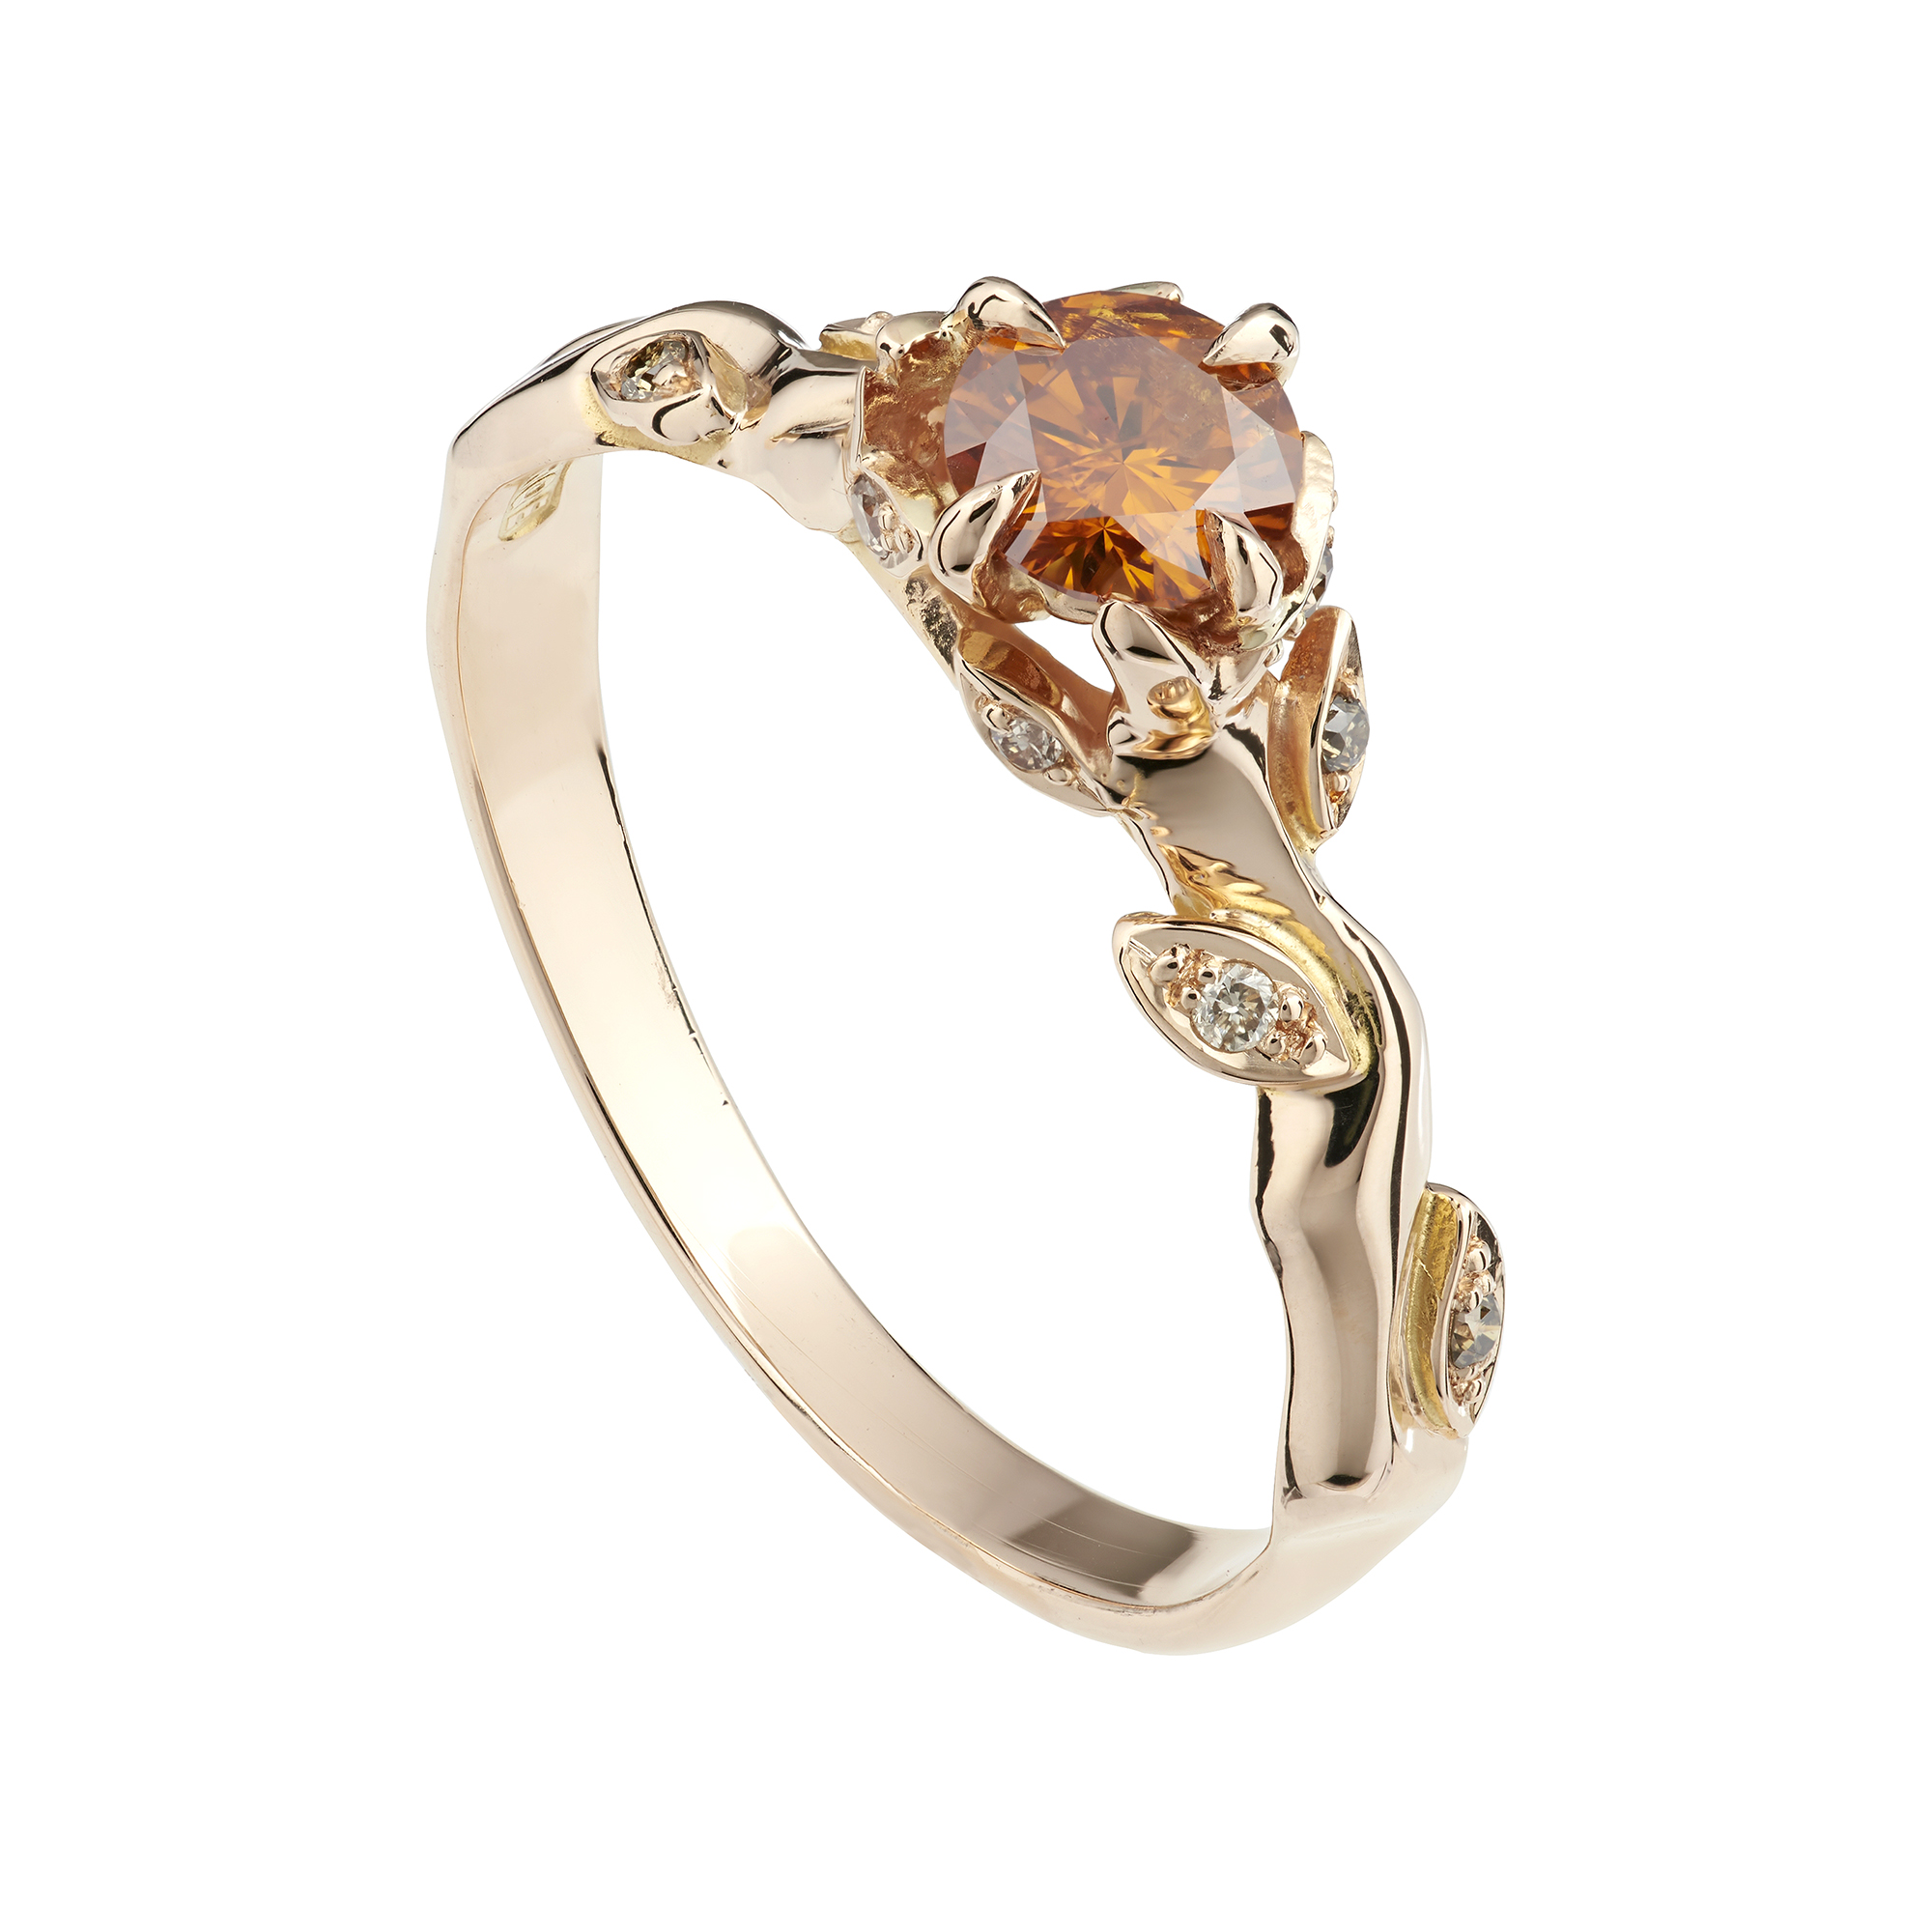 jewelry wedding lov elke product moynihan orange image rings